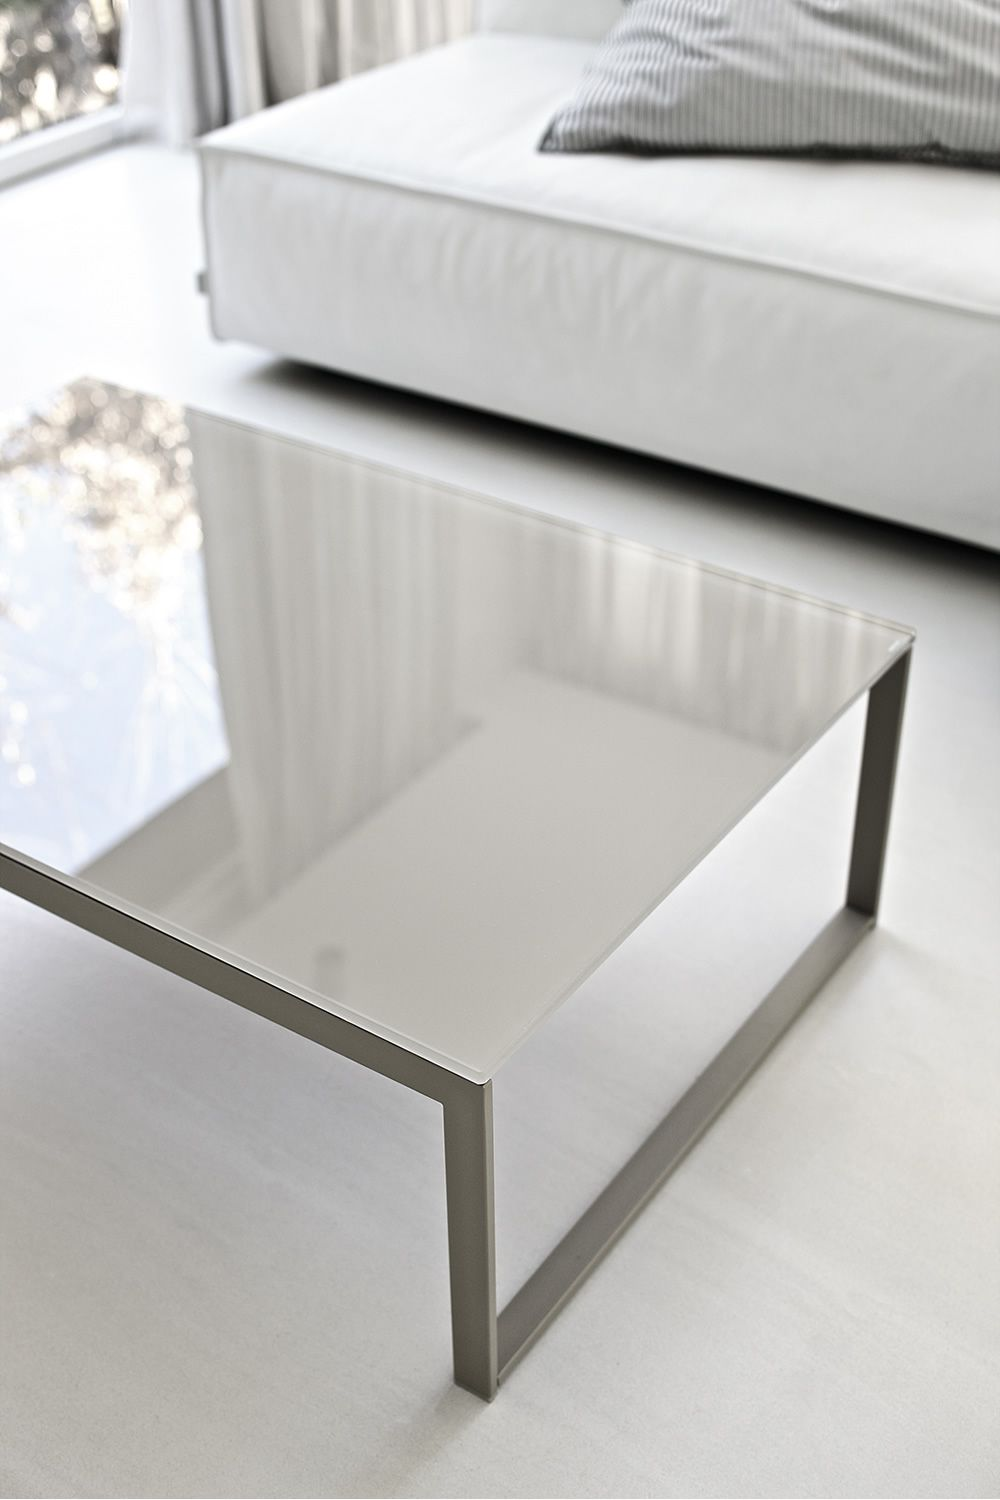 ... Hip Hop Table - Coffee table with sand laquered steel frame, glass top  lacquered glossy